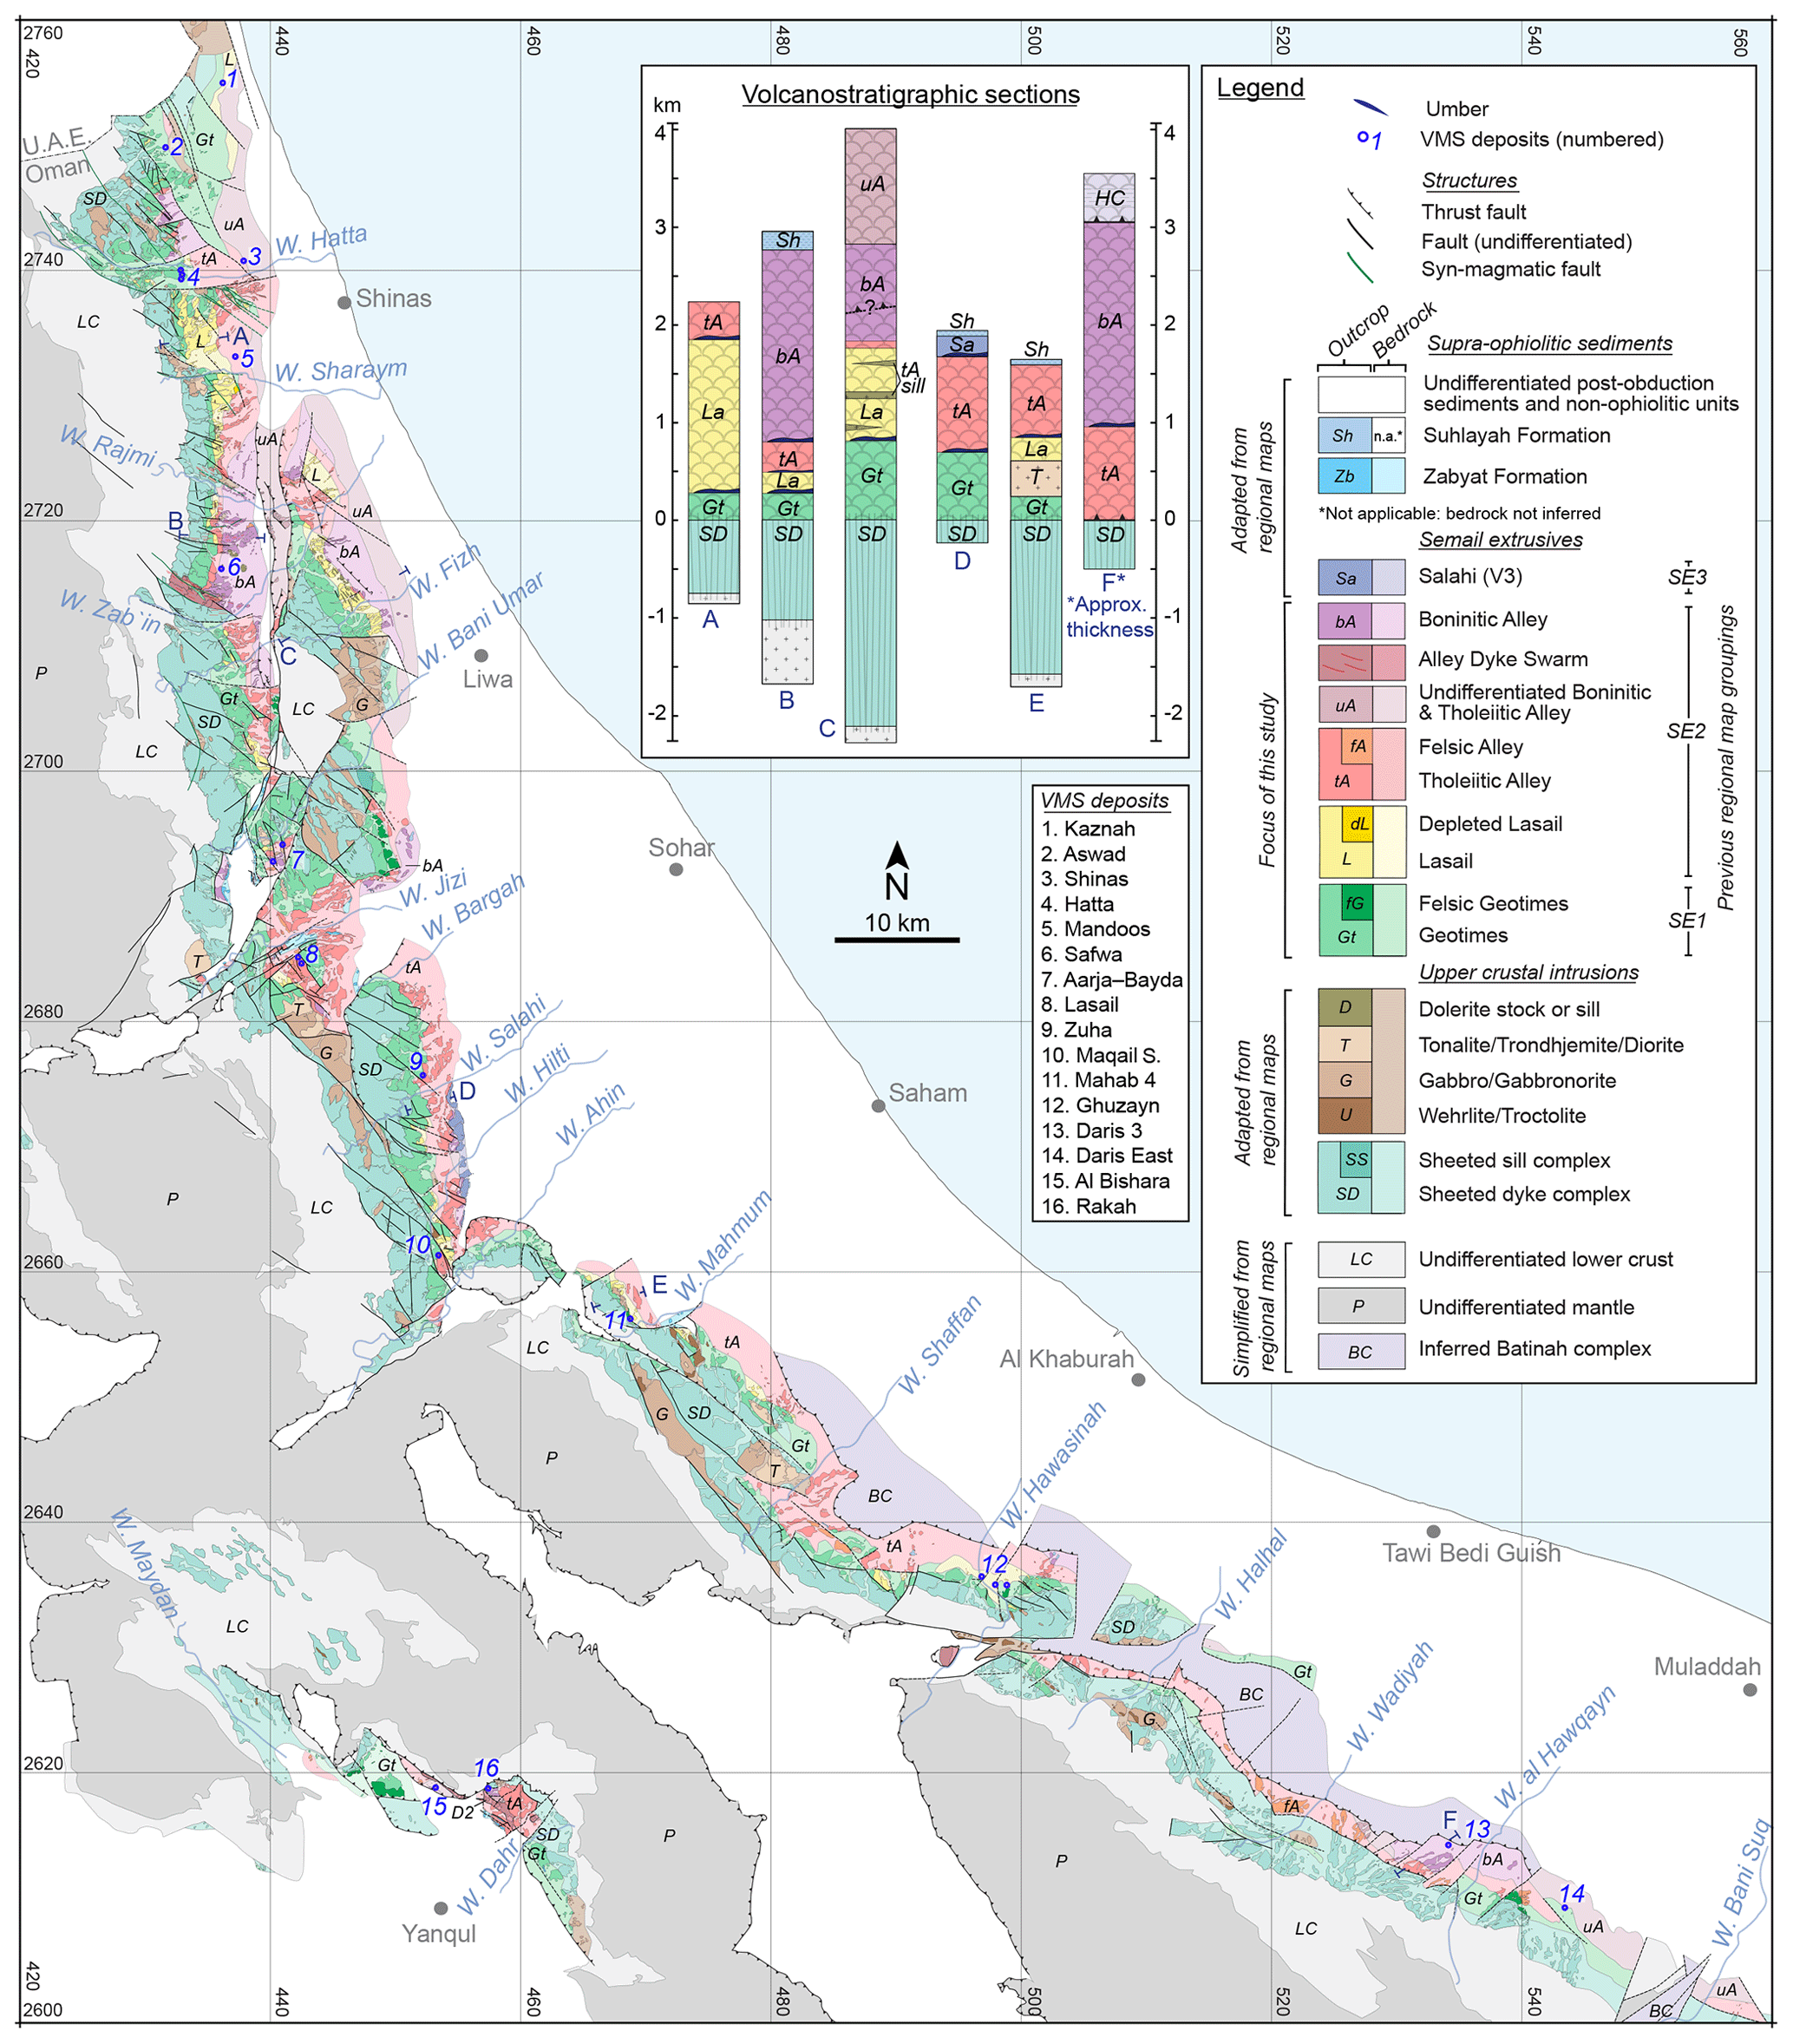 SE - A revised map of volcanic units in the Oman ophiolite ...